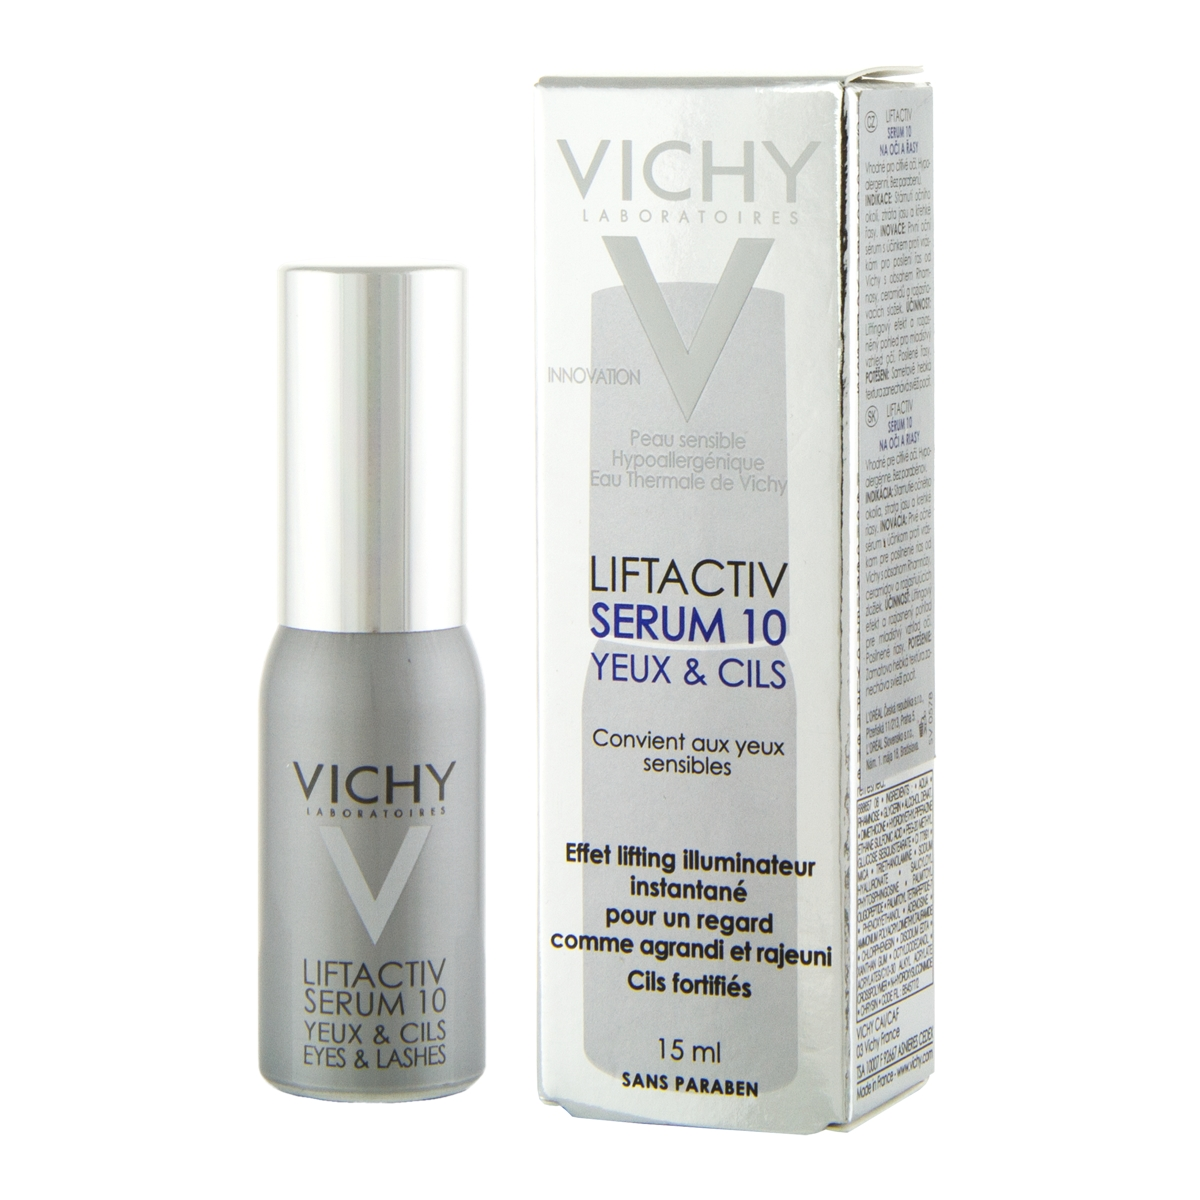 Vichy Liftactiv Derm Source Serum 10 15 ml 71046